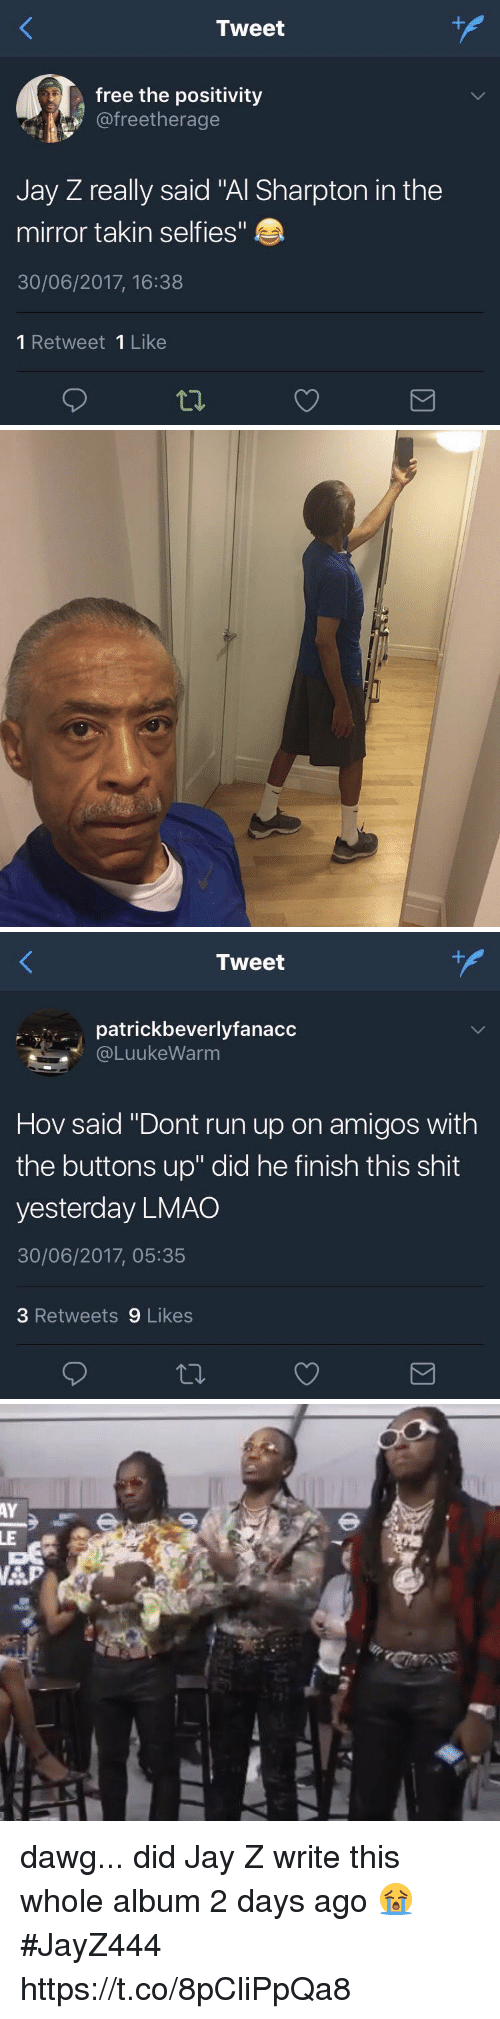 "Al Sharpton: Tweet  free the positivity  @freetherage  Jay Z really said ""Al Sharpton in the  mirror takin selfies""  30/06/2017, 16:38  1 Retweet 1 Like   Tweet  patrickbeverlyfanacc  @LuukeWarm  Hov said ""Dont run up on amigos with  the buttons up"" did he finish this shit  yesterday LMAO  30/06/2017, 05:35  3 Retweets 9 Likes dawg... did Jay Z write this whole album 2 days ago 😭 #JayZ444 https://t.co/8pCliPpQa8"